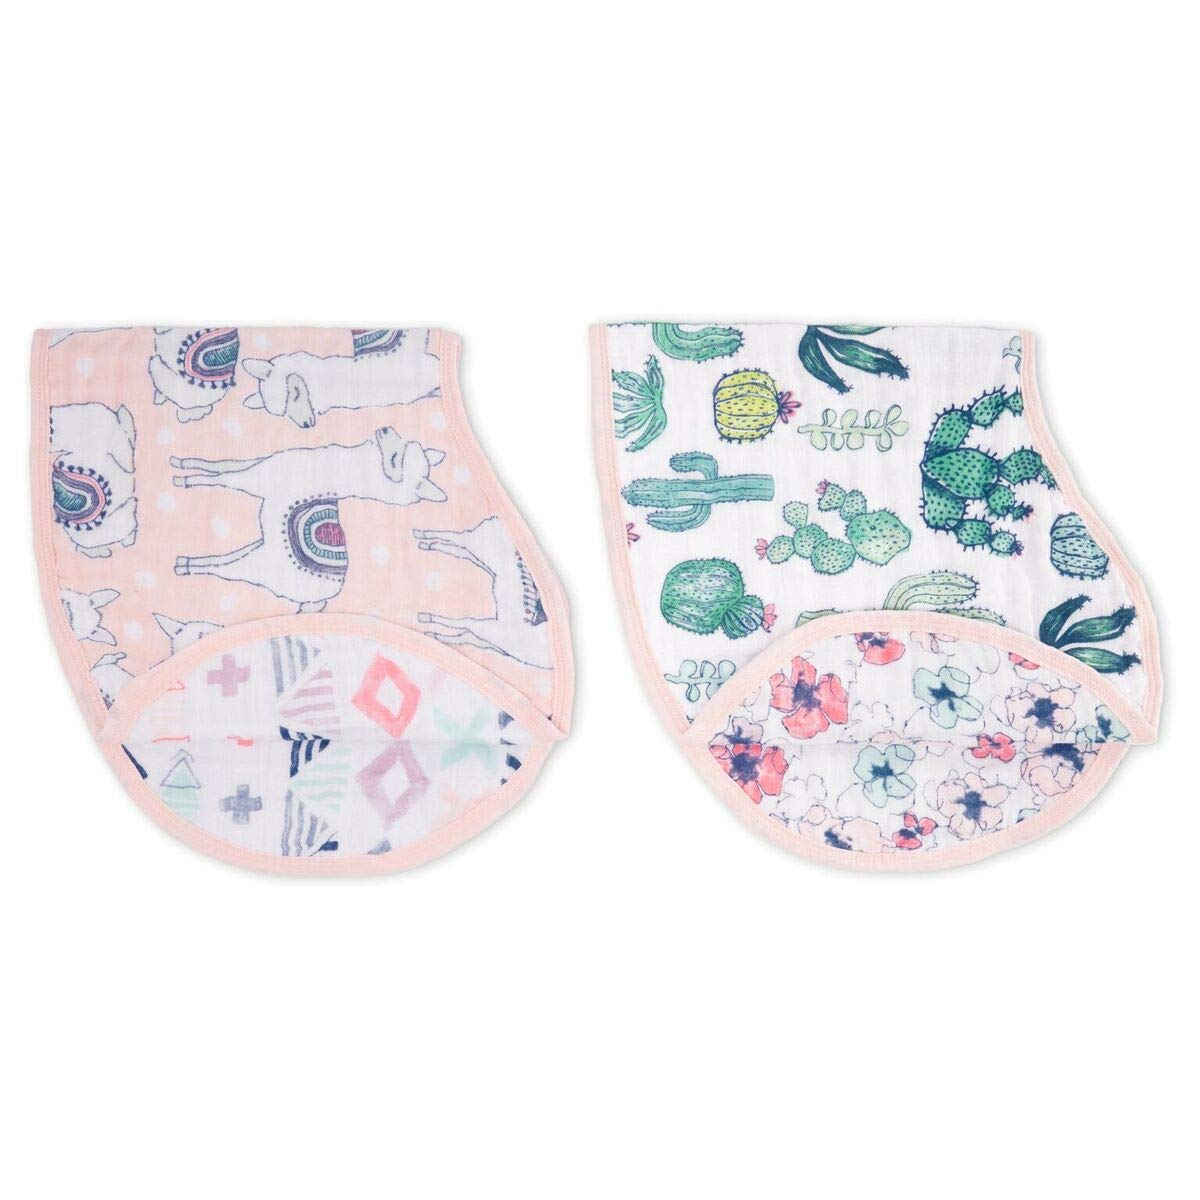 aden + anais Burpy Baby Bib, 100% Cotton Muslin, 4 Layer Multi Use Burping Cloth, Super Soft & Absorbent Burp Rag for Infants, Newborns and Toddlers, 2 Pack, Trail Bloom Llamas: Baby